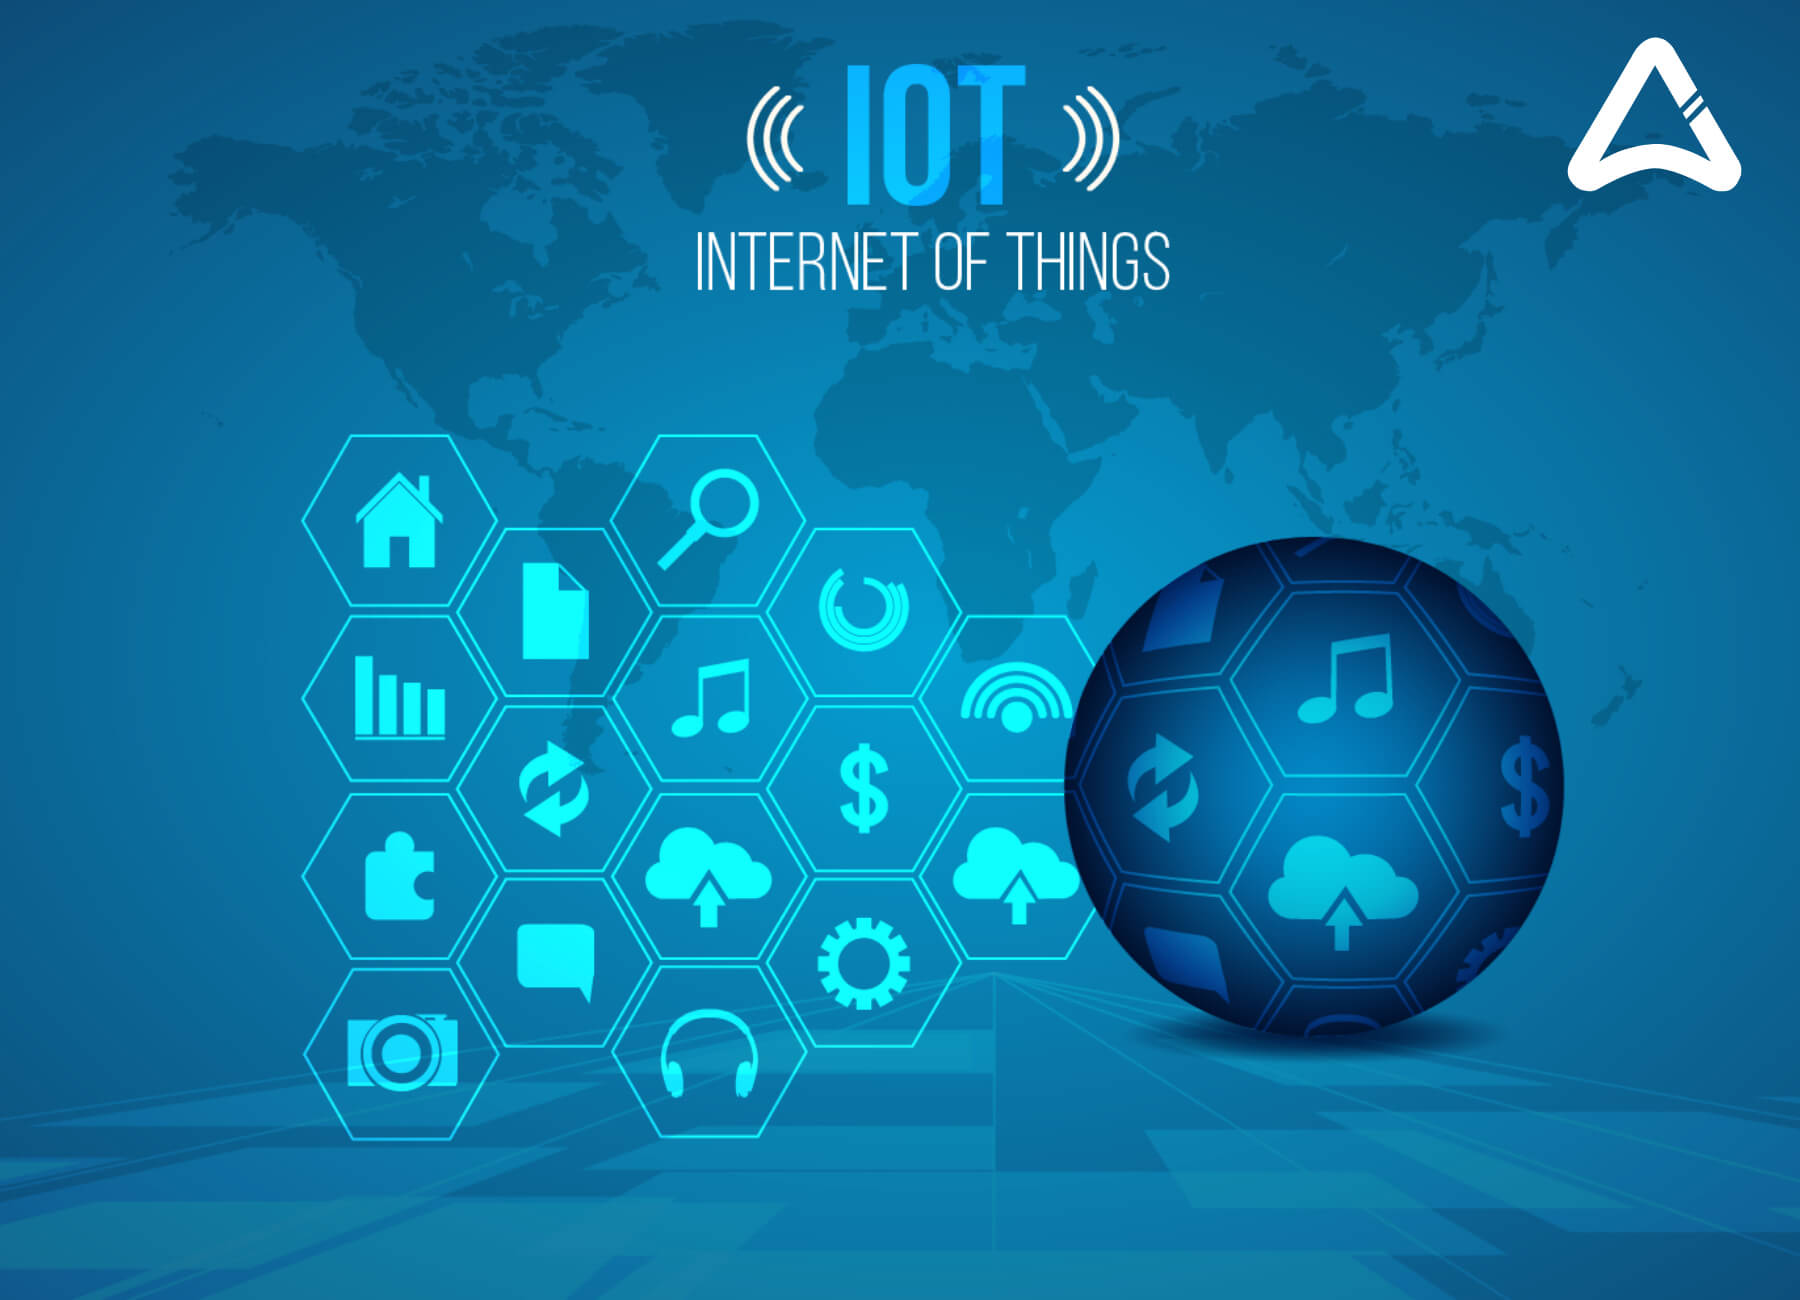 demand for IoT Applications